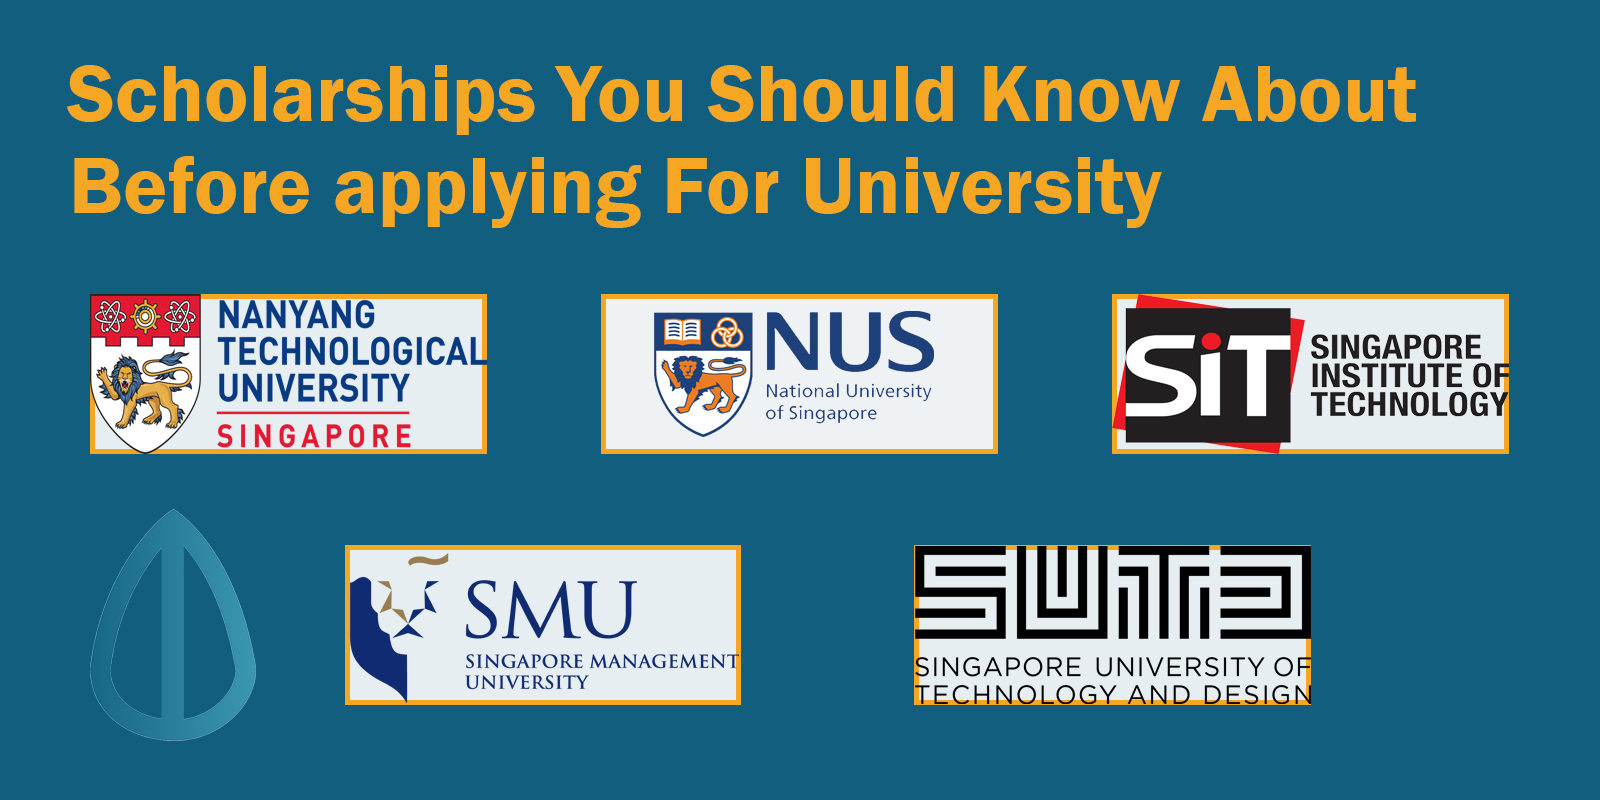 Scholarships You Should Know About Before Applying For University